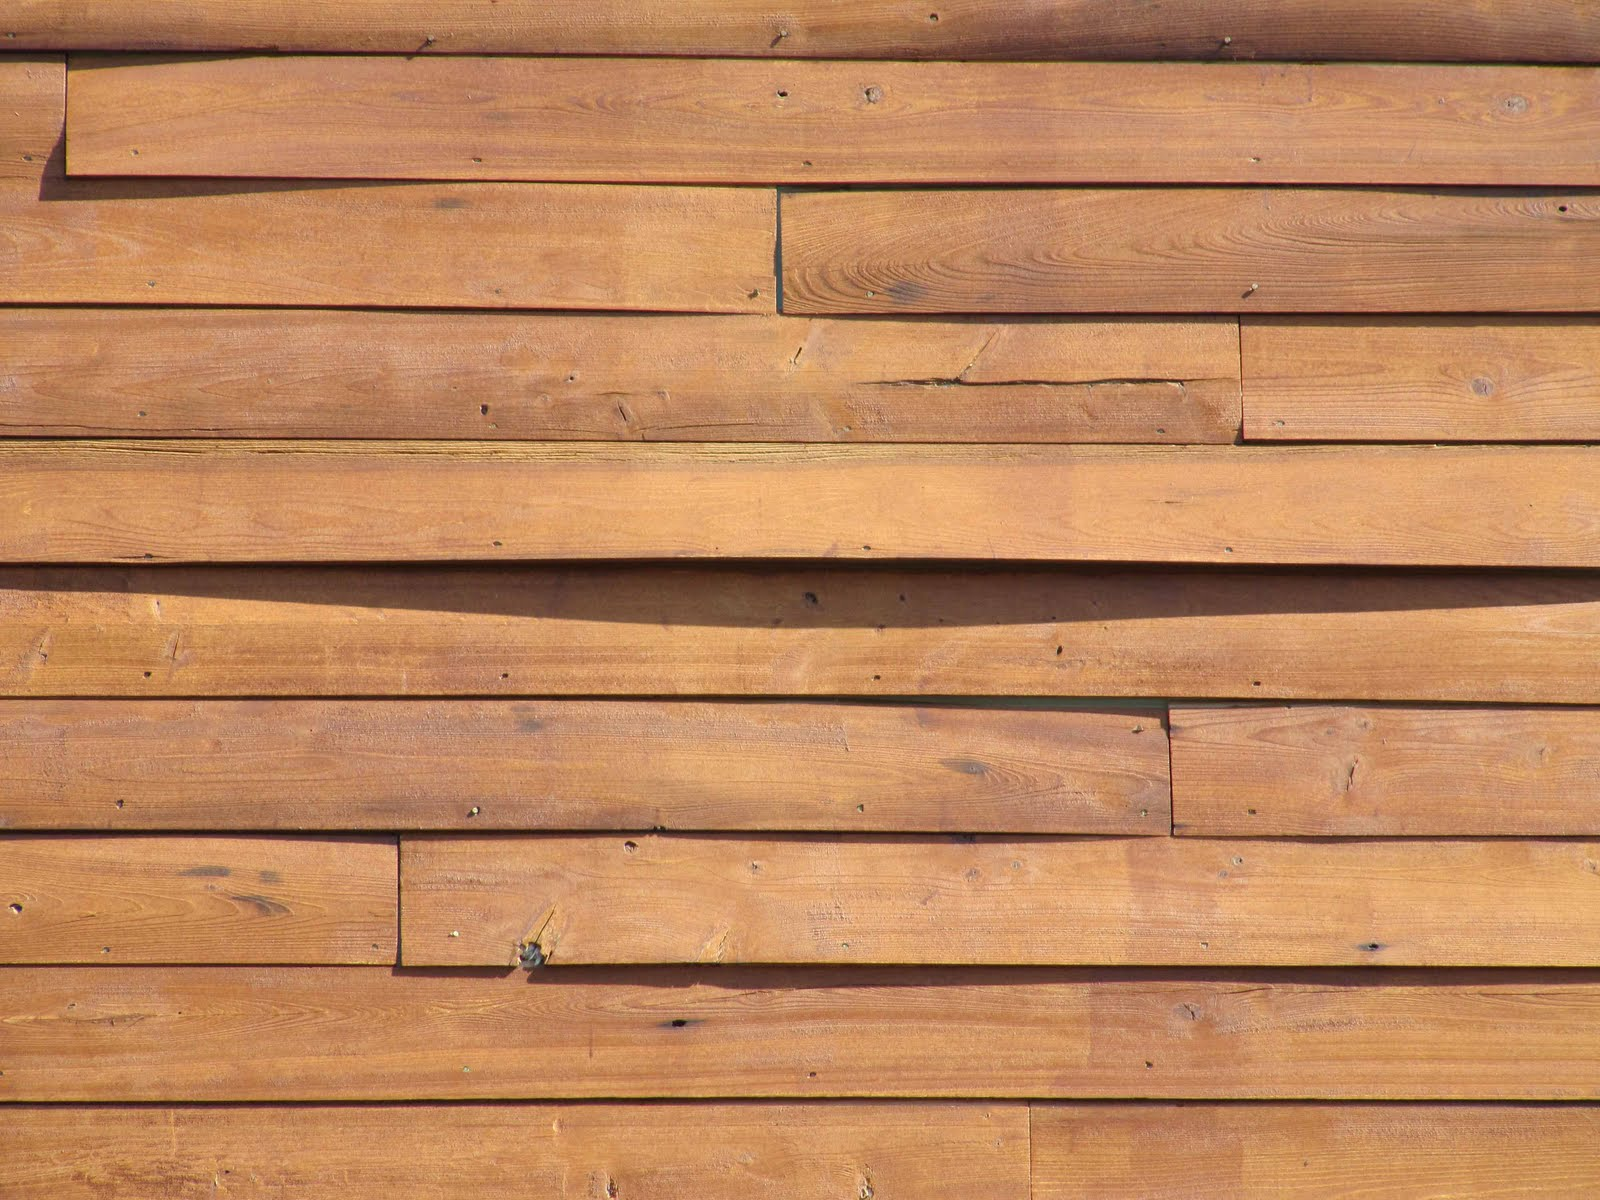 Old Wood Siding Types http://andrewvesselinovitch.blogspot.com/2010/10/leaky-horizontal-wood-siding-case-for.html